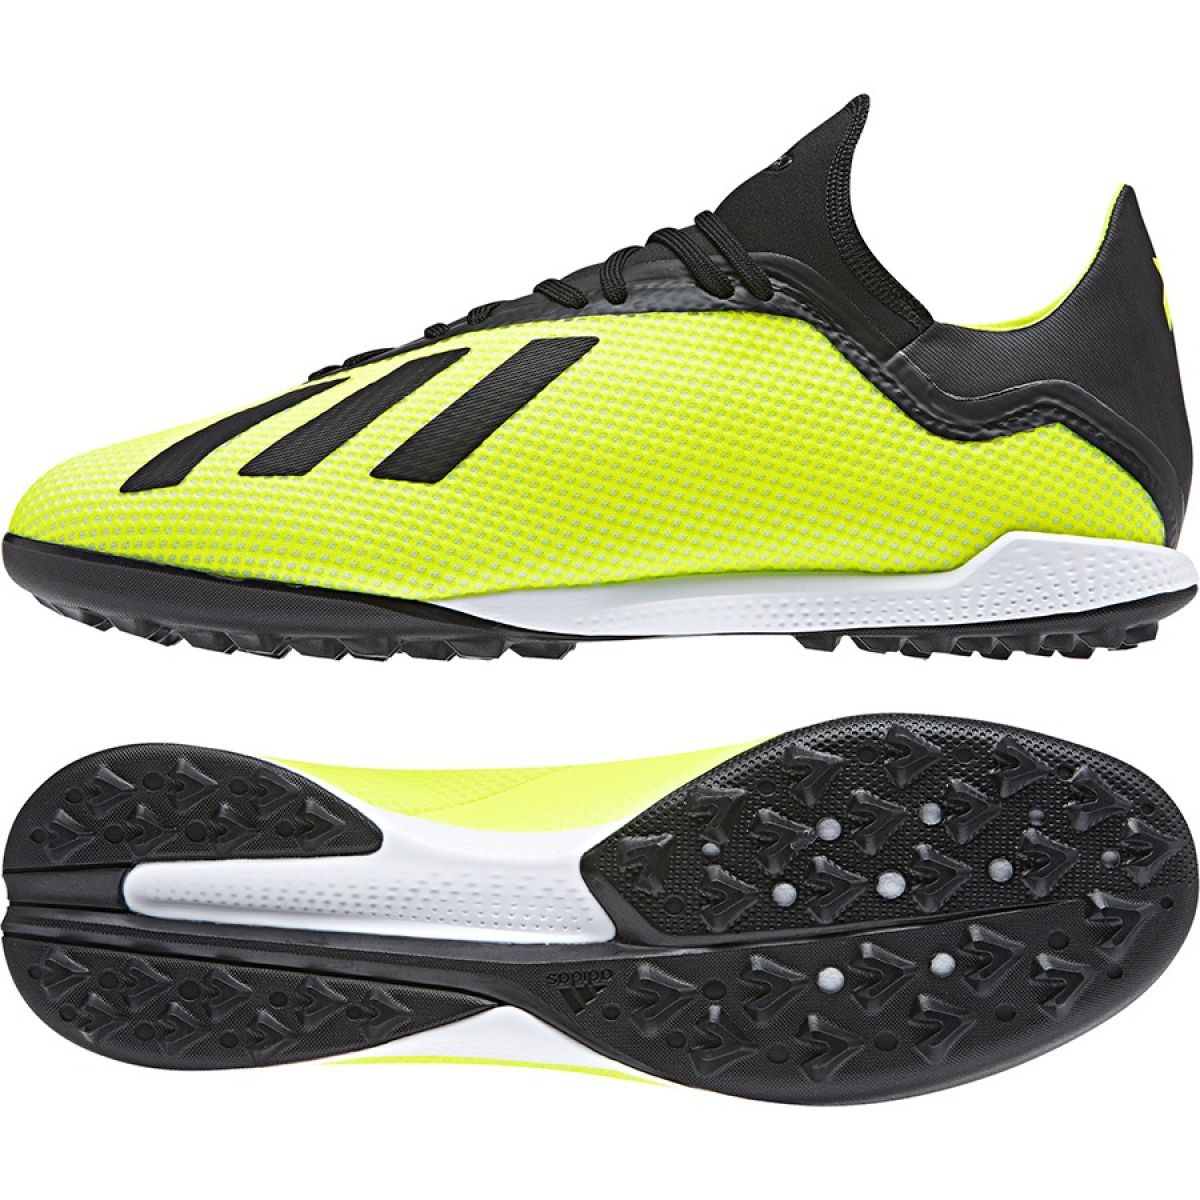 cheap for discount 5c020 021aa Football boots adidas X Tango 18.3 Tf M DB2475